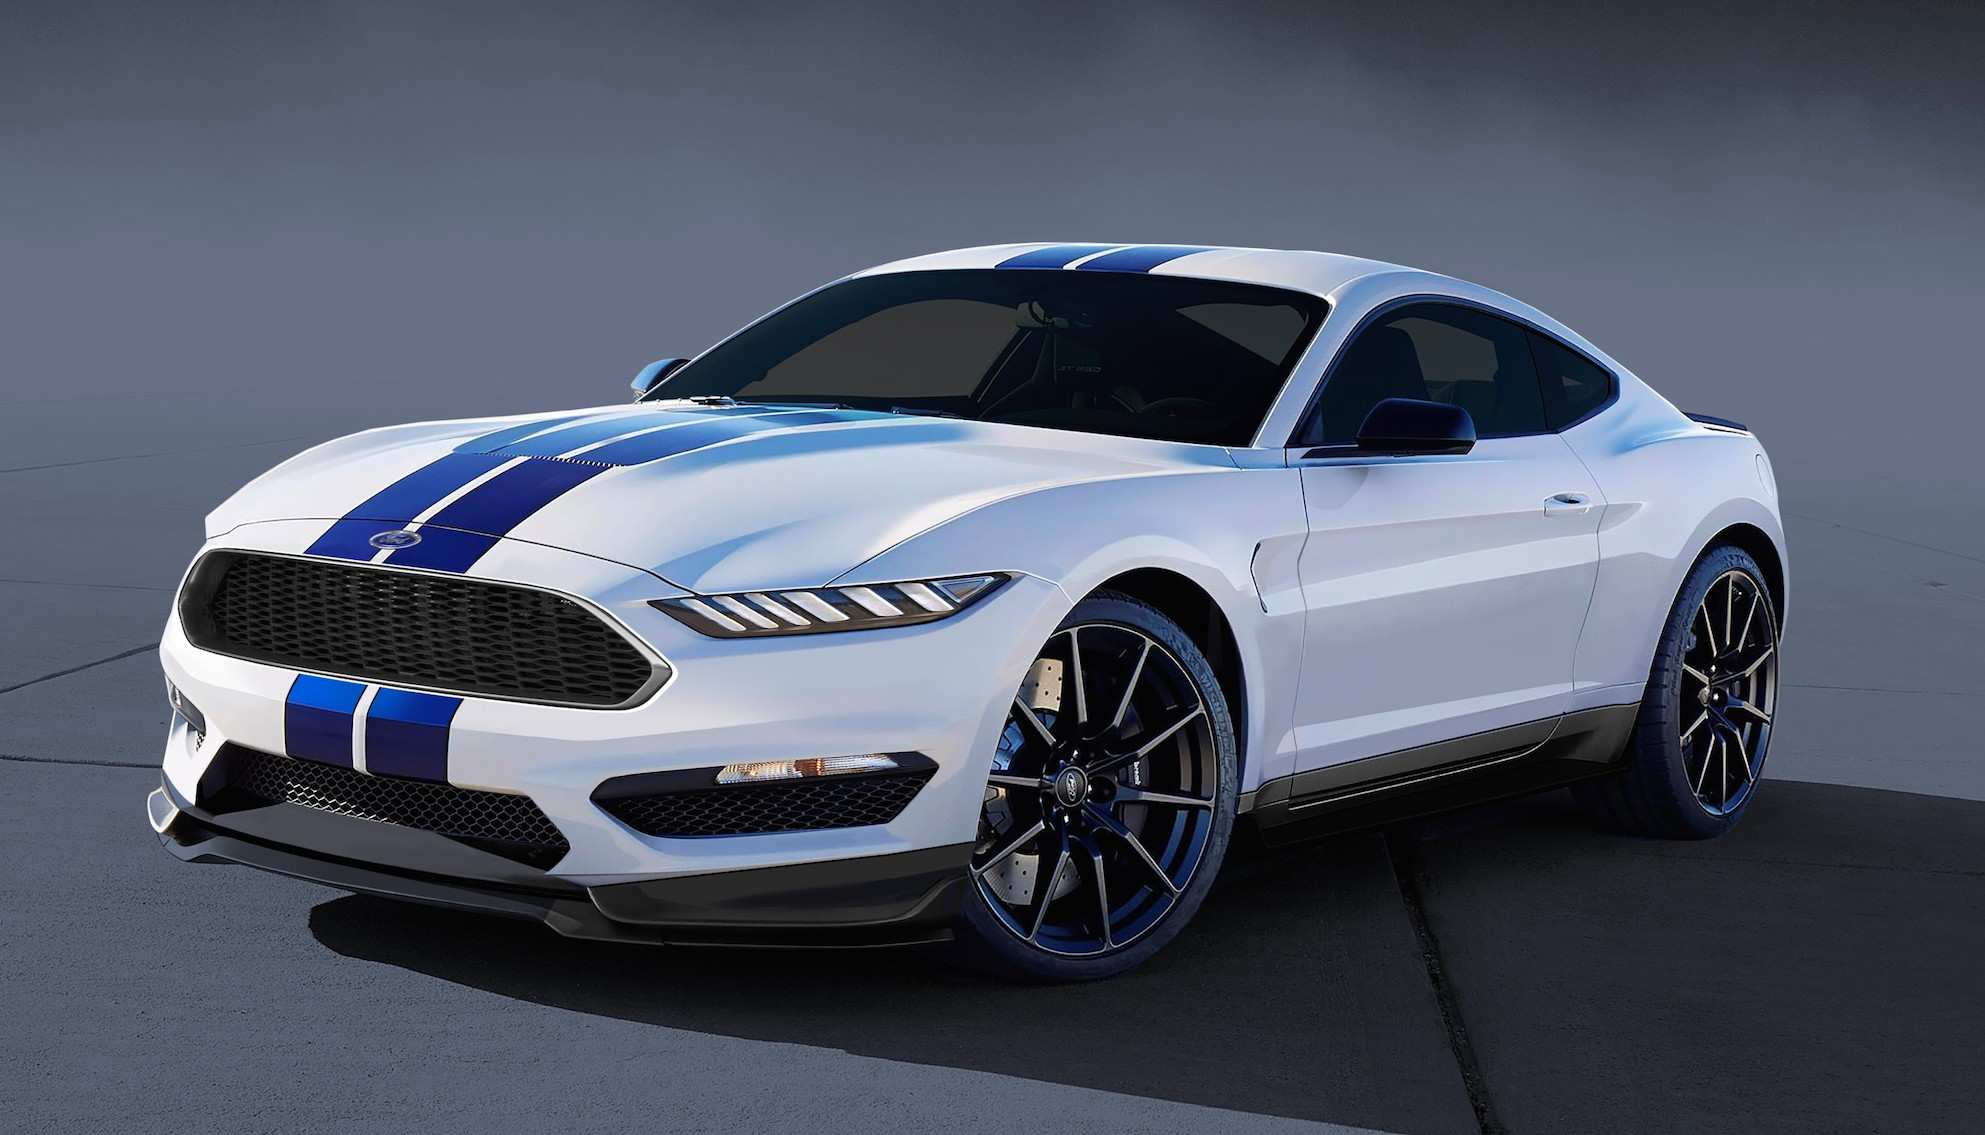 60 Best Review 2020 Mustang Shelby Gt350 Price with 2020 Mustang Shelby Gt350